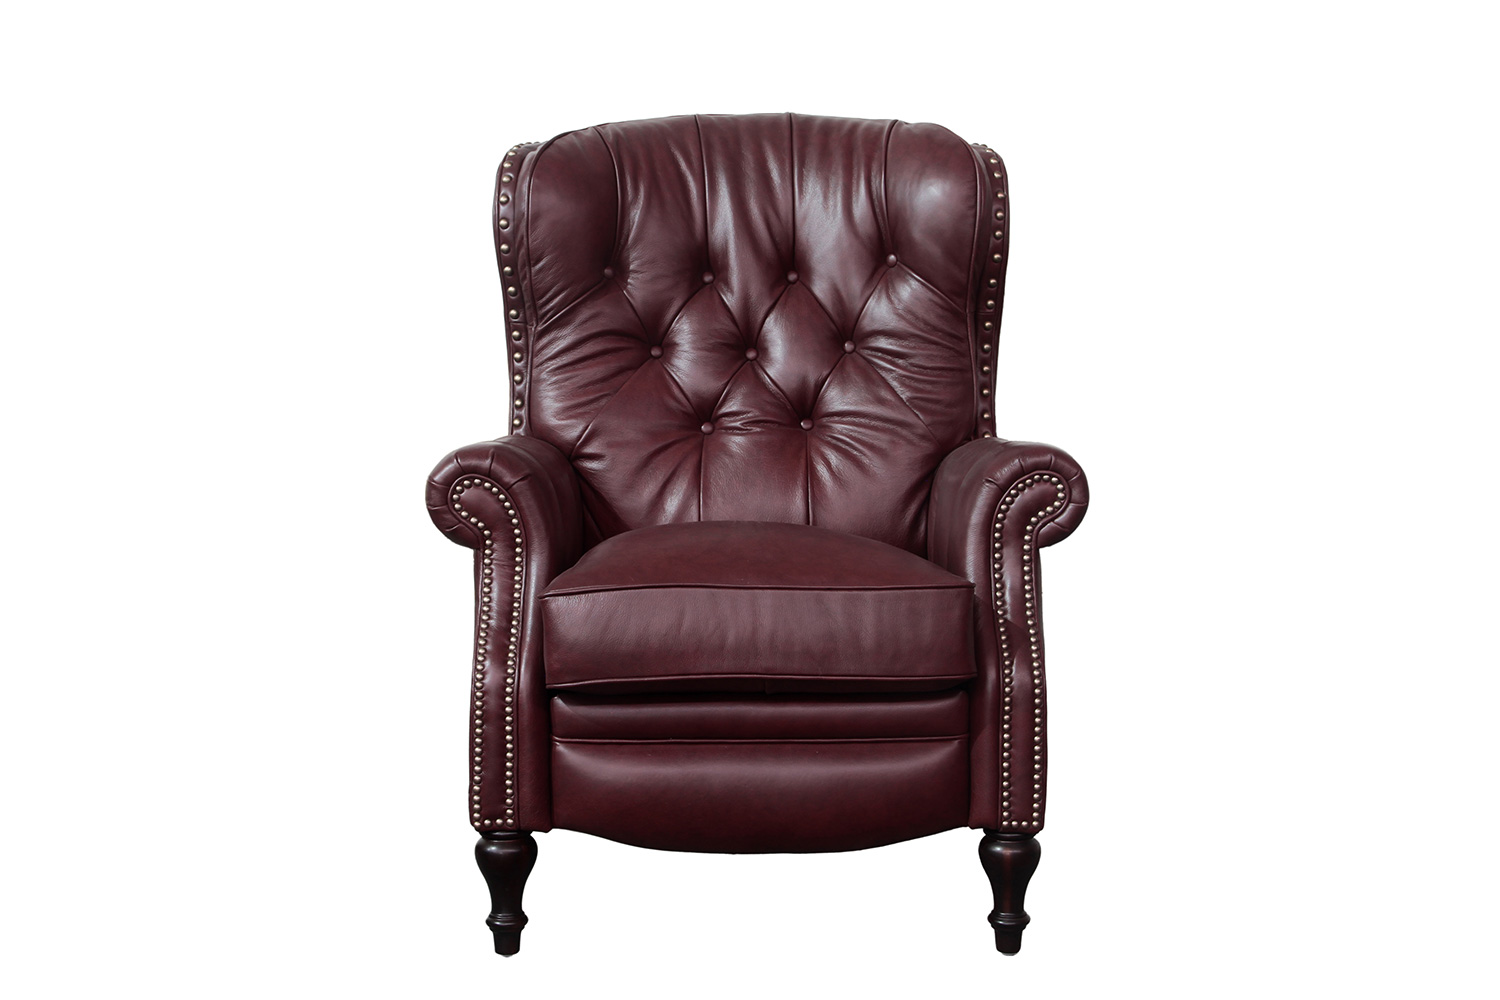 Barcalounger KendAll Recliner Chair - Shoreham Wine/All Leather